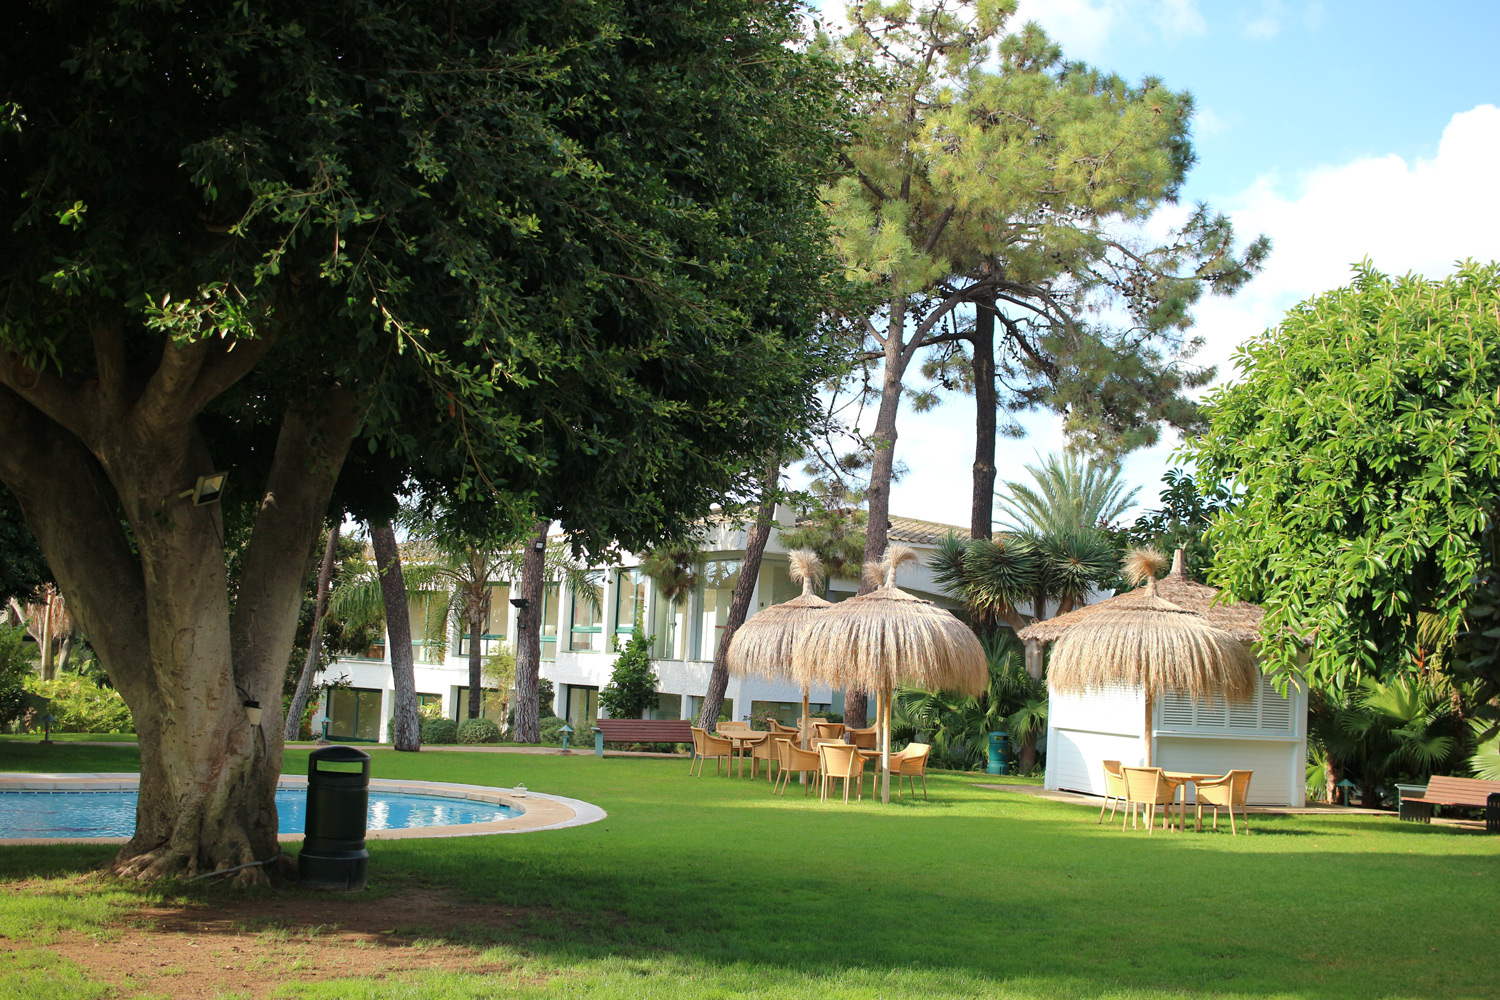 los-monteros-hotel-spa-nad-golf-marbella-spain-review-travel-blogger-31